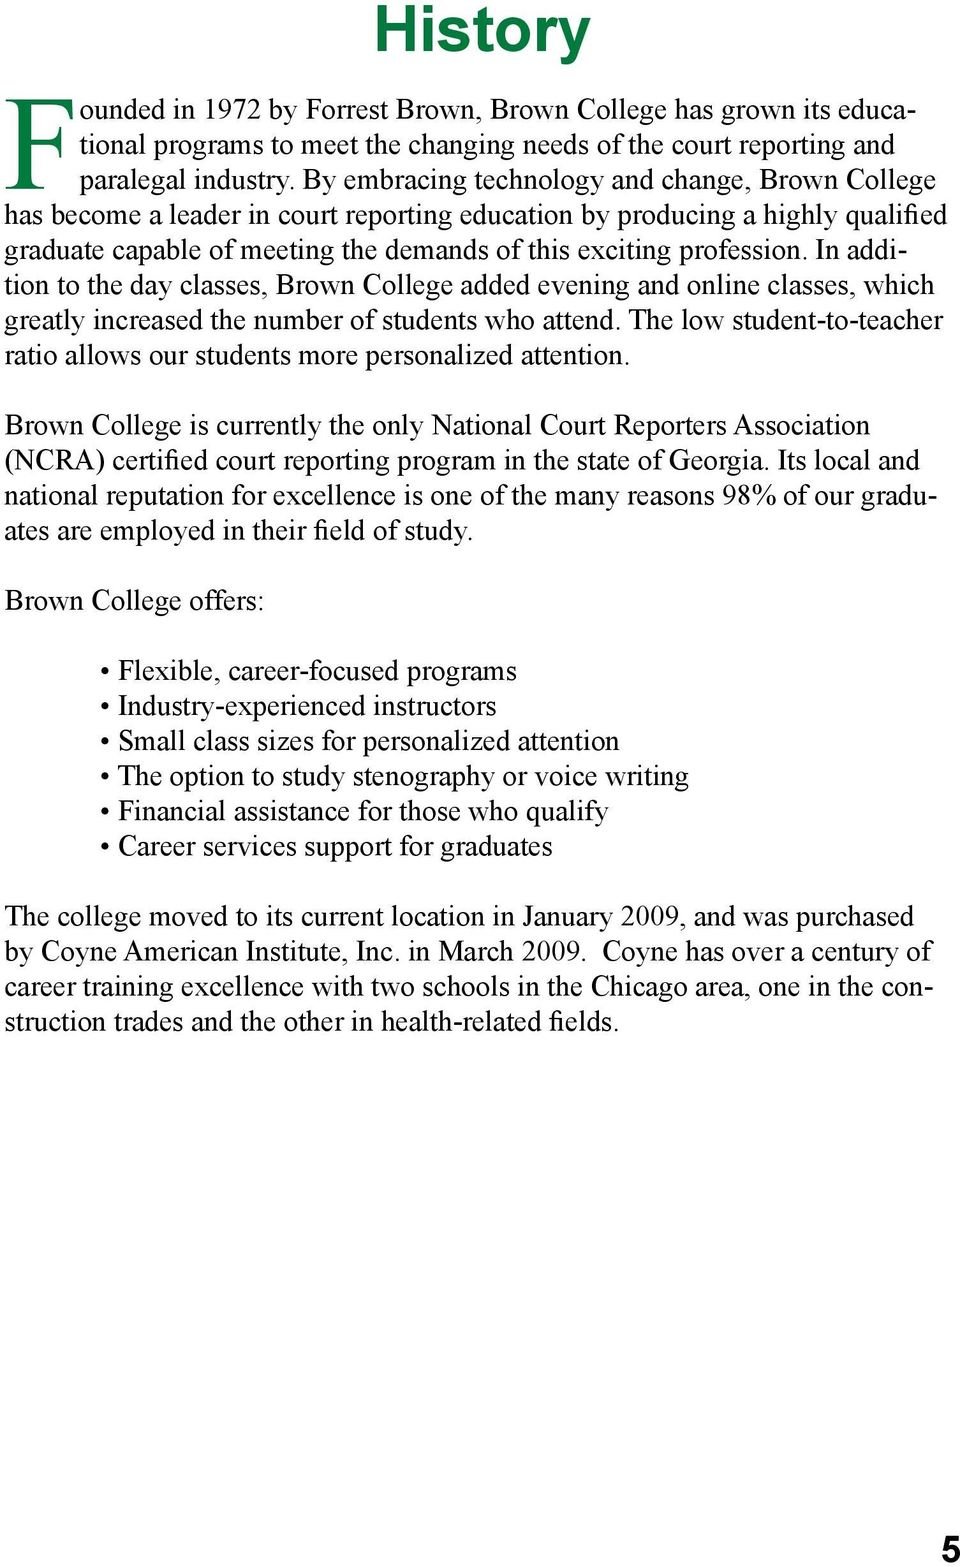 In addition to the day classes, Brown College added evening and online classes, which greatly increased the number of students who attend.